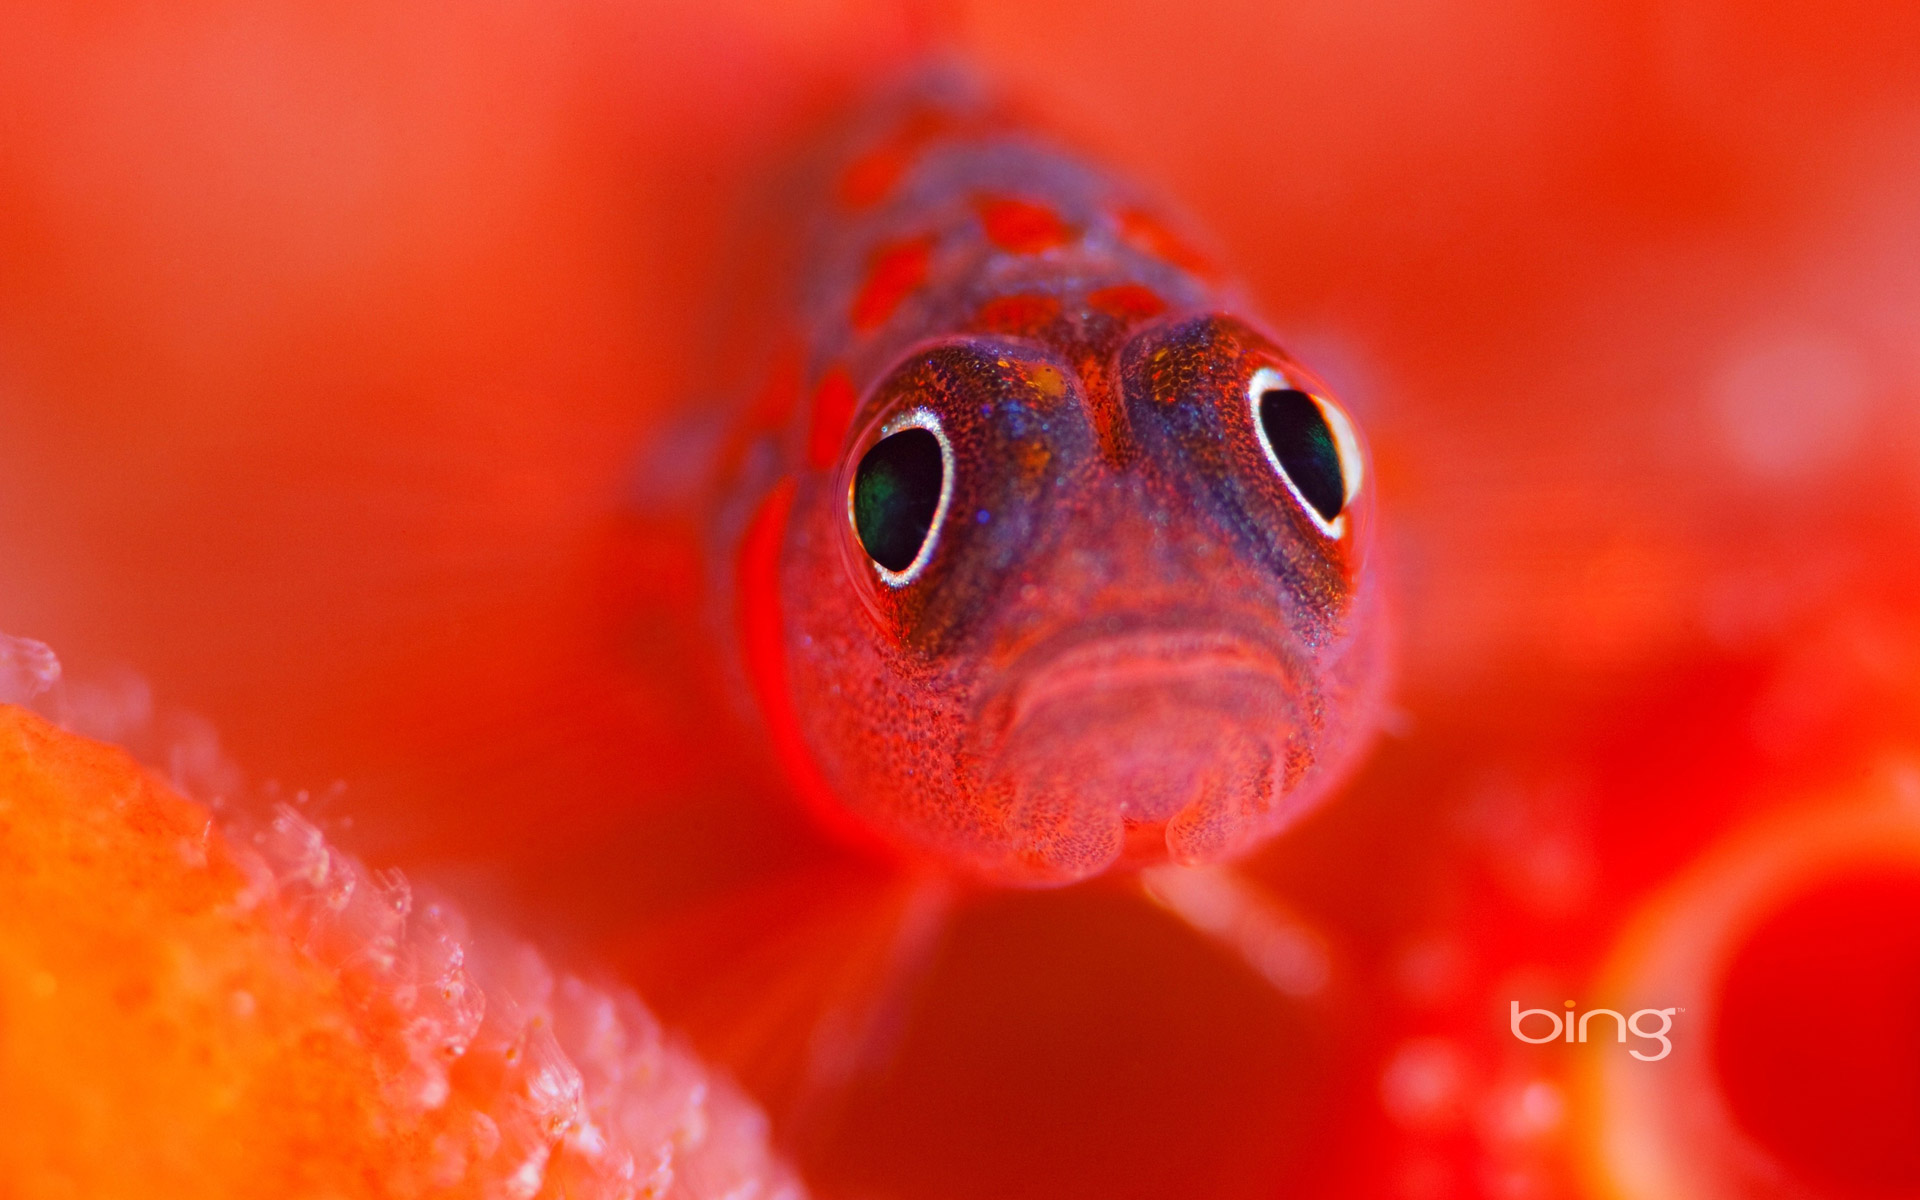 A flame goby guards her eggs in the Kaafu Atoll of the Maldives